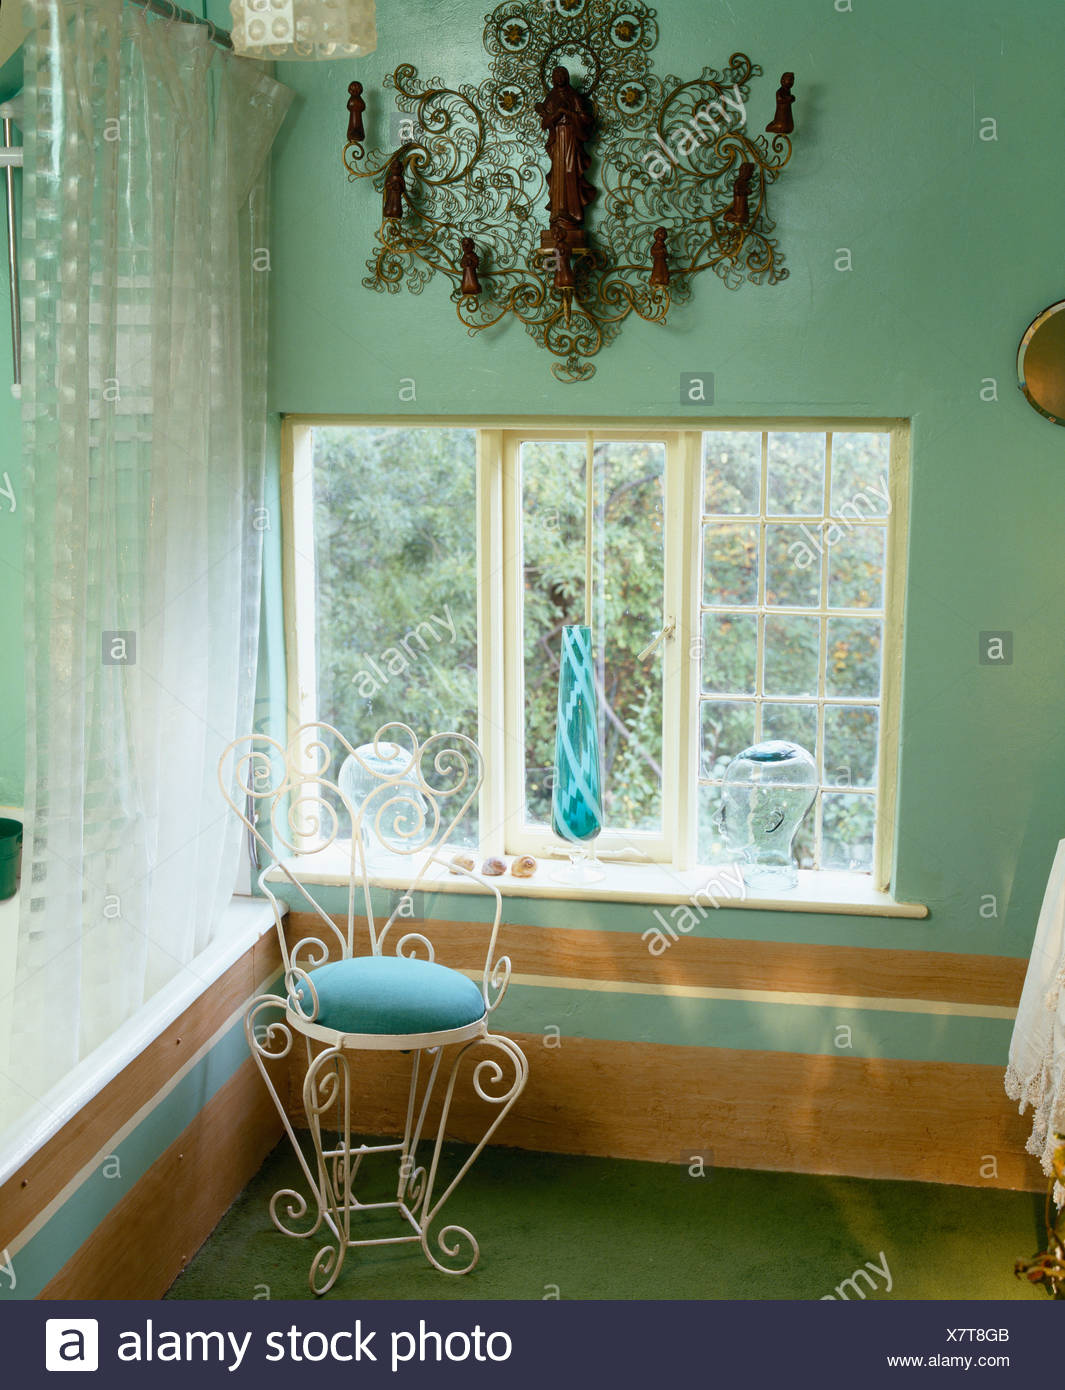 Ornate metal wall sconce above window of pale green bathroom with ...